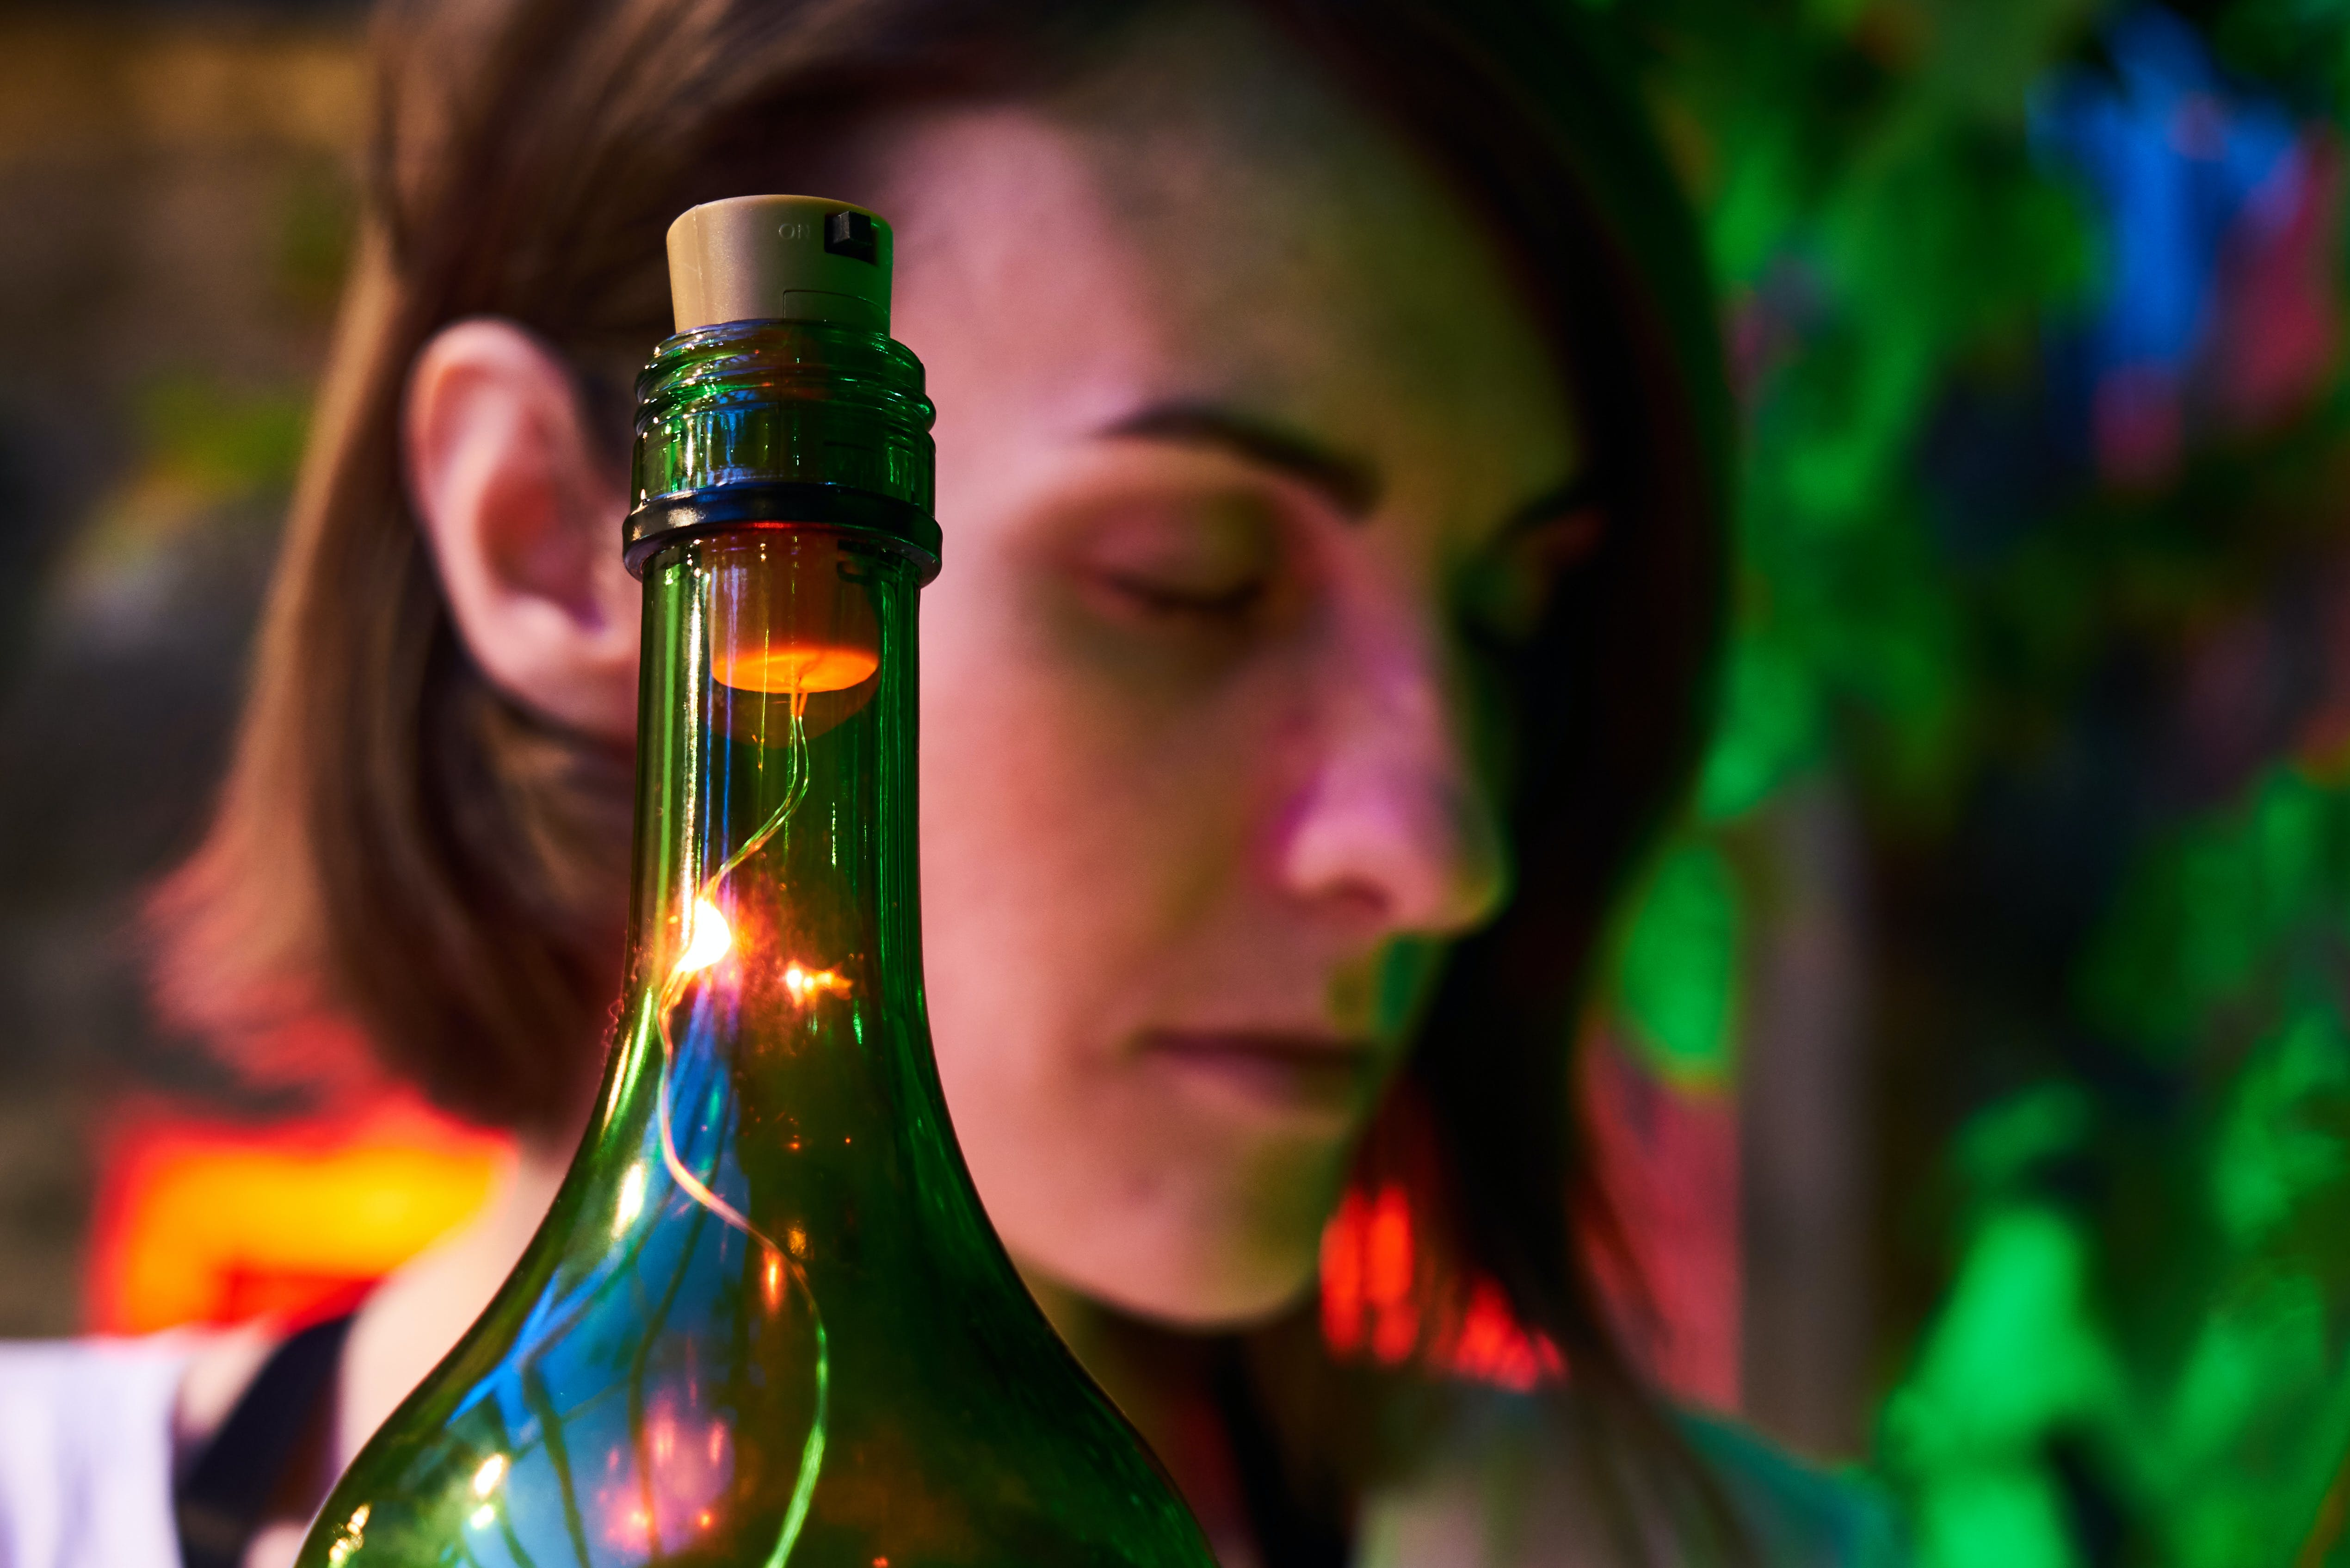 Free stock photo of beauty, bottle, casual, emotional